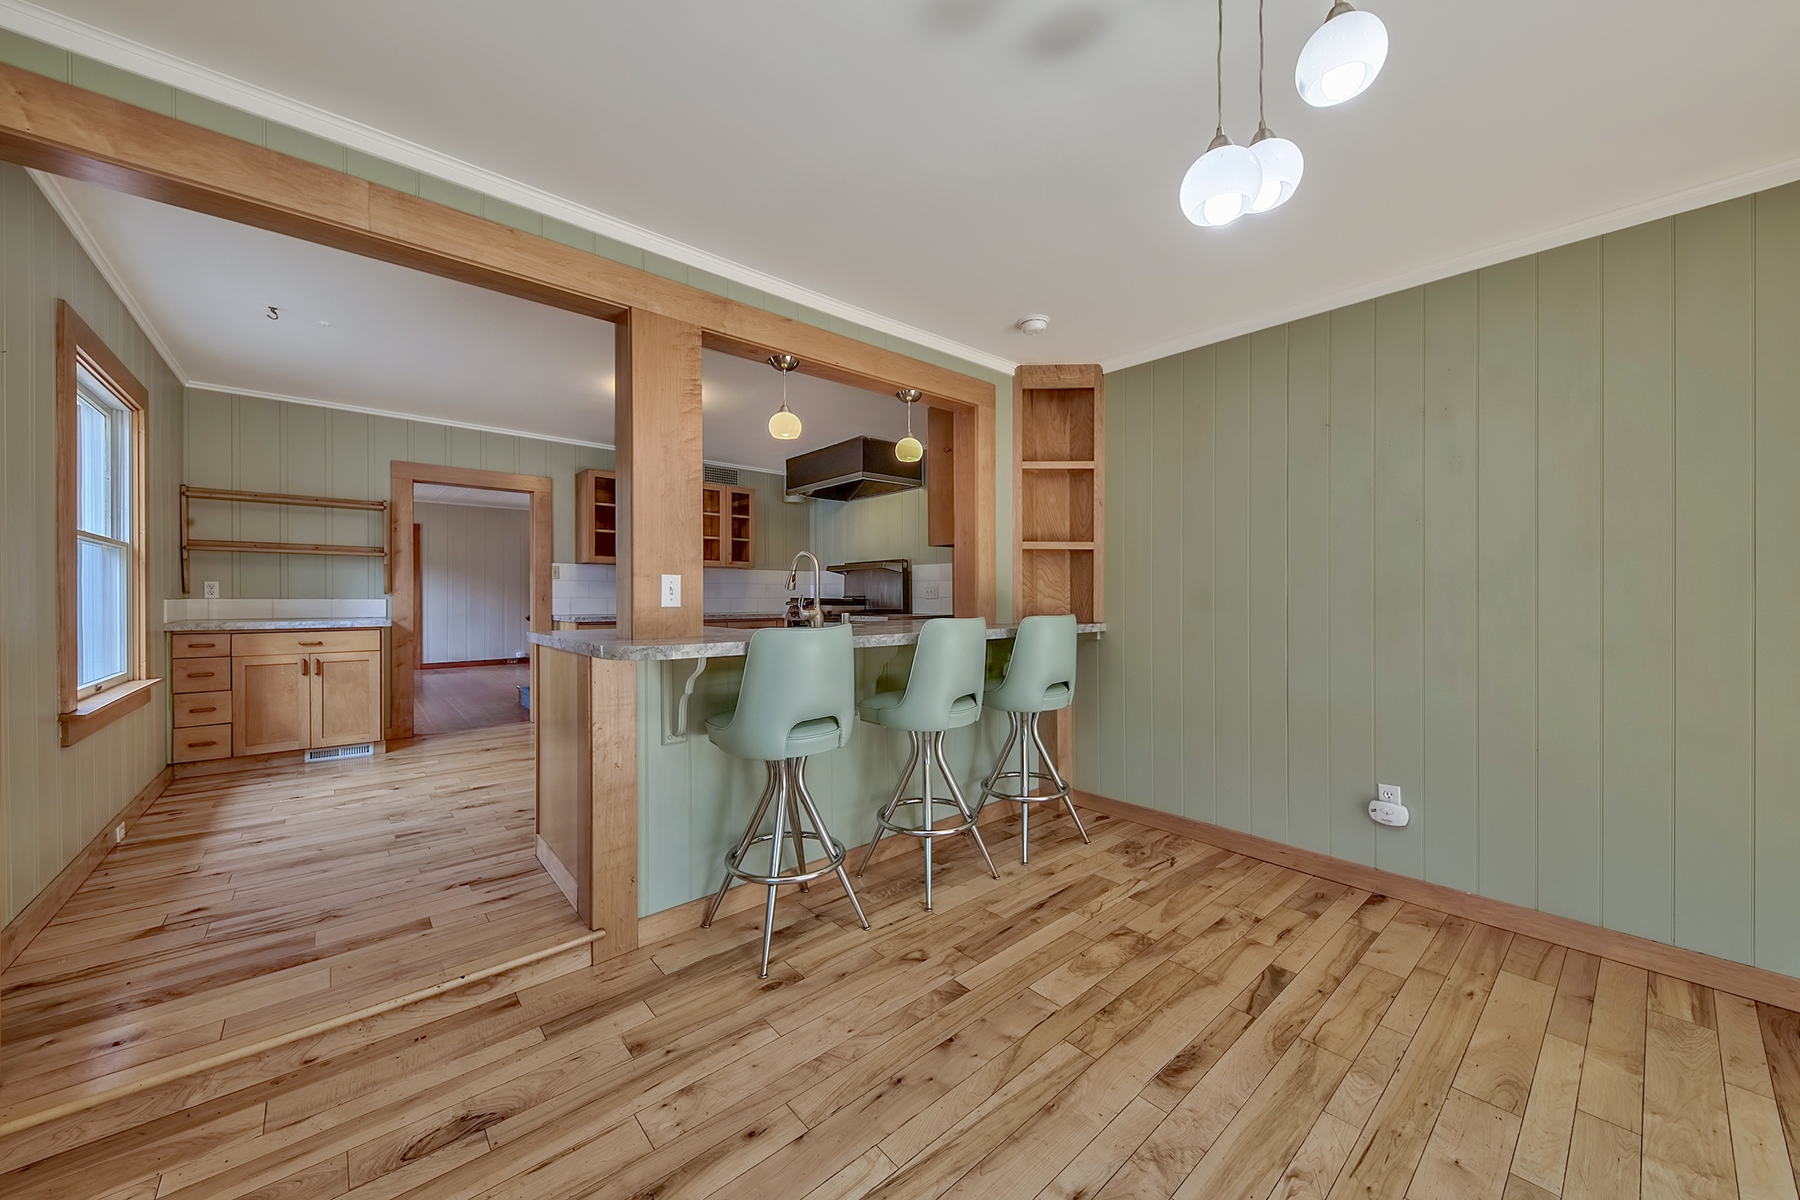 Additional photo for property listing at 10056 Sierra Avenue, Truckee CA 96161 10056 Sierra Avenue Truckee, California 96161 United States